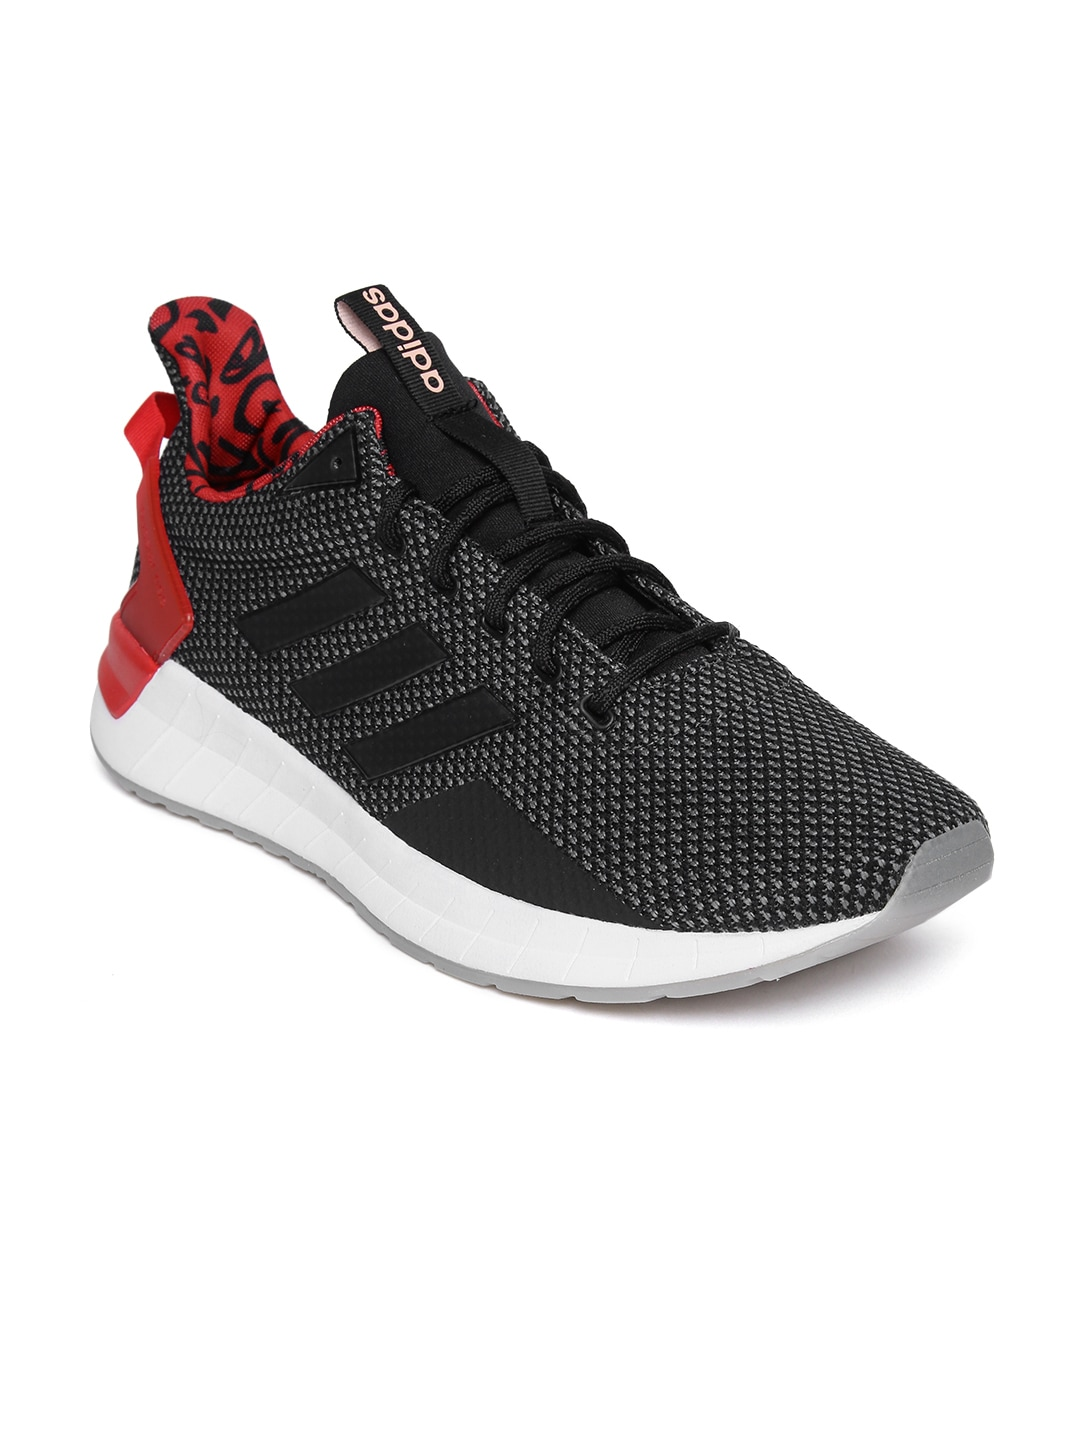 9c86b313b adidas - Exclusive adidas Online Store in India at Myntra